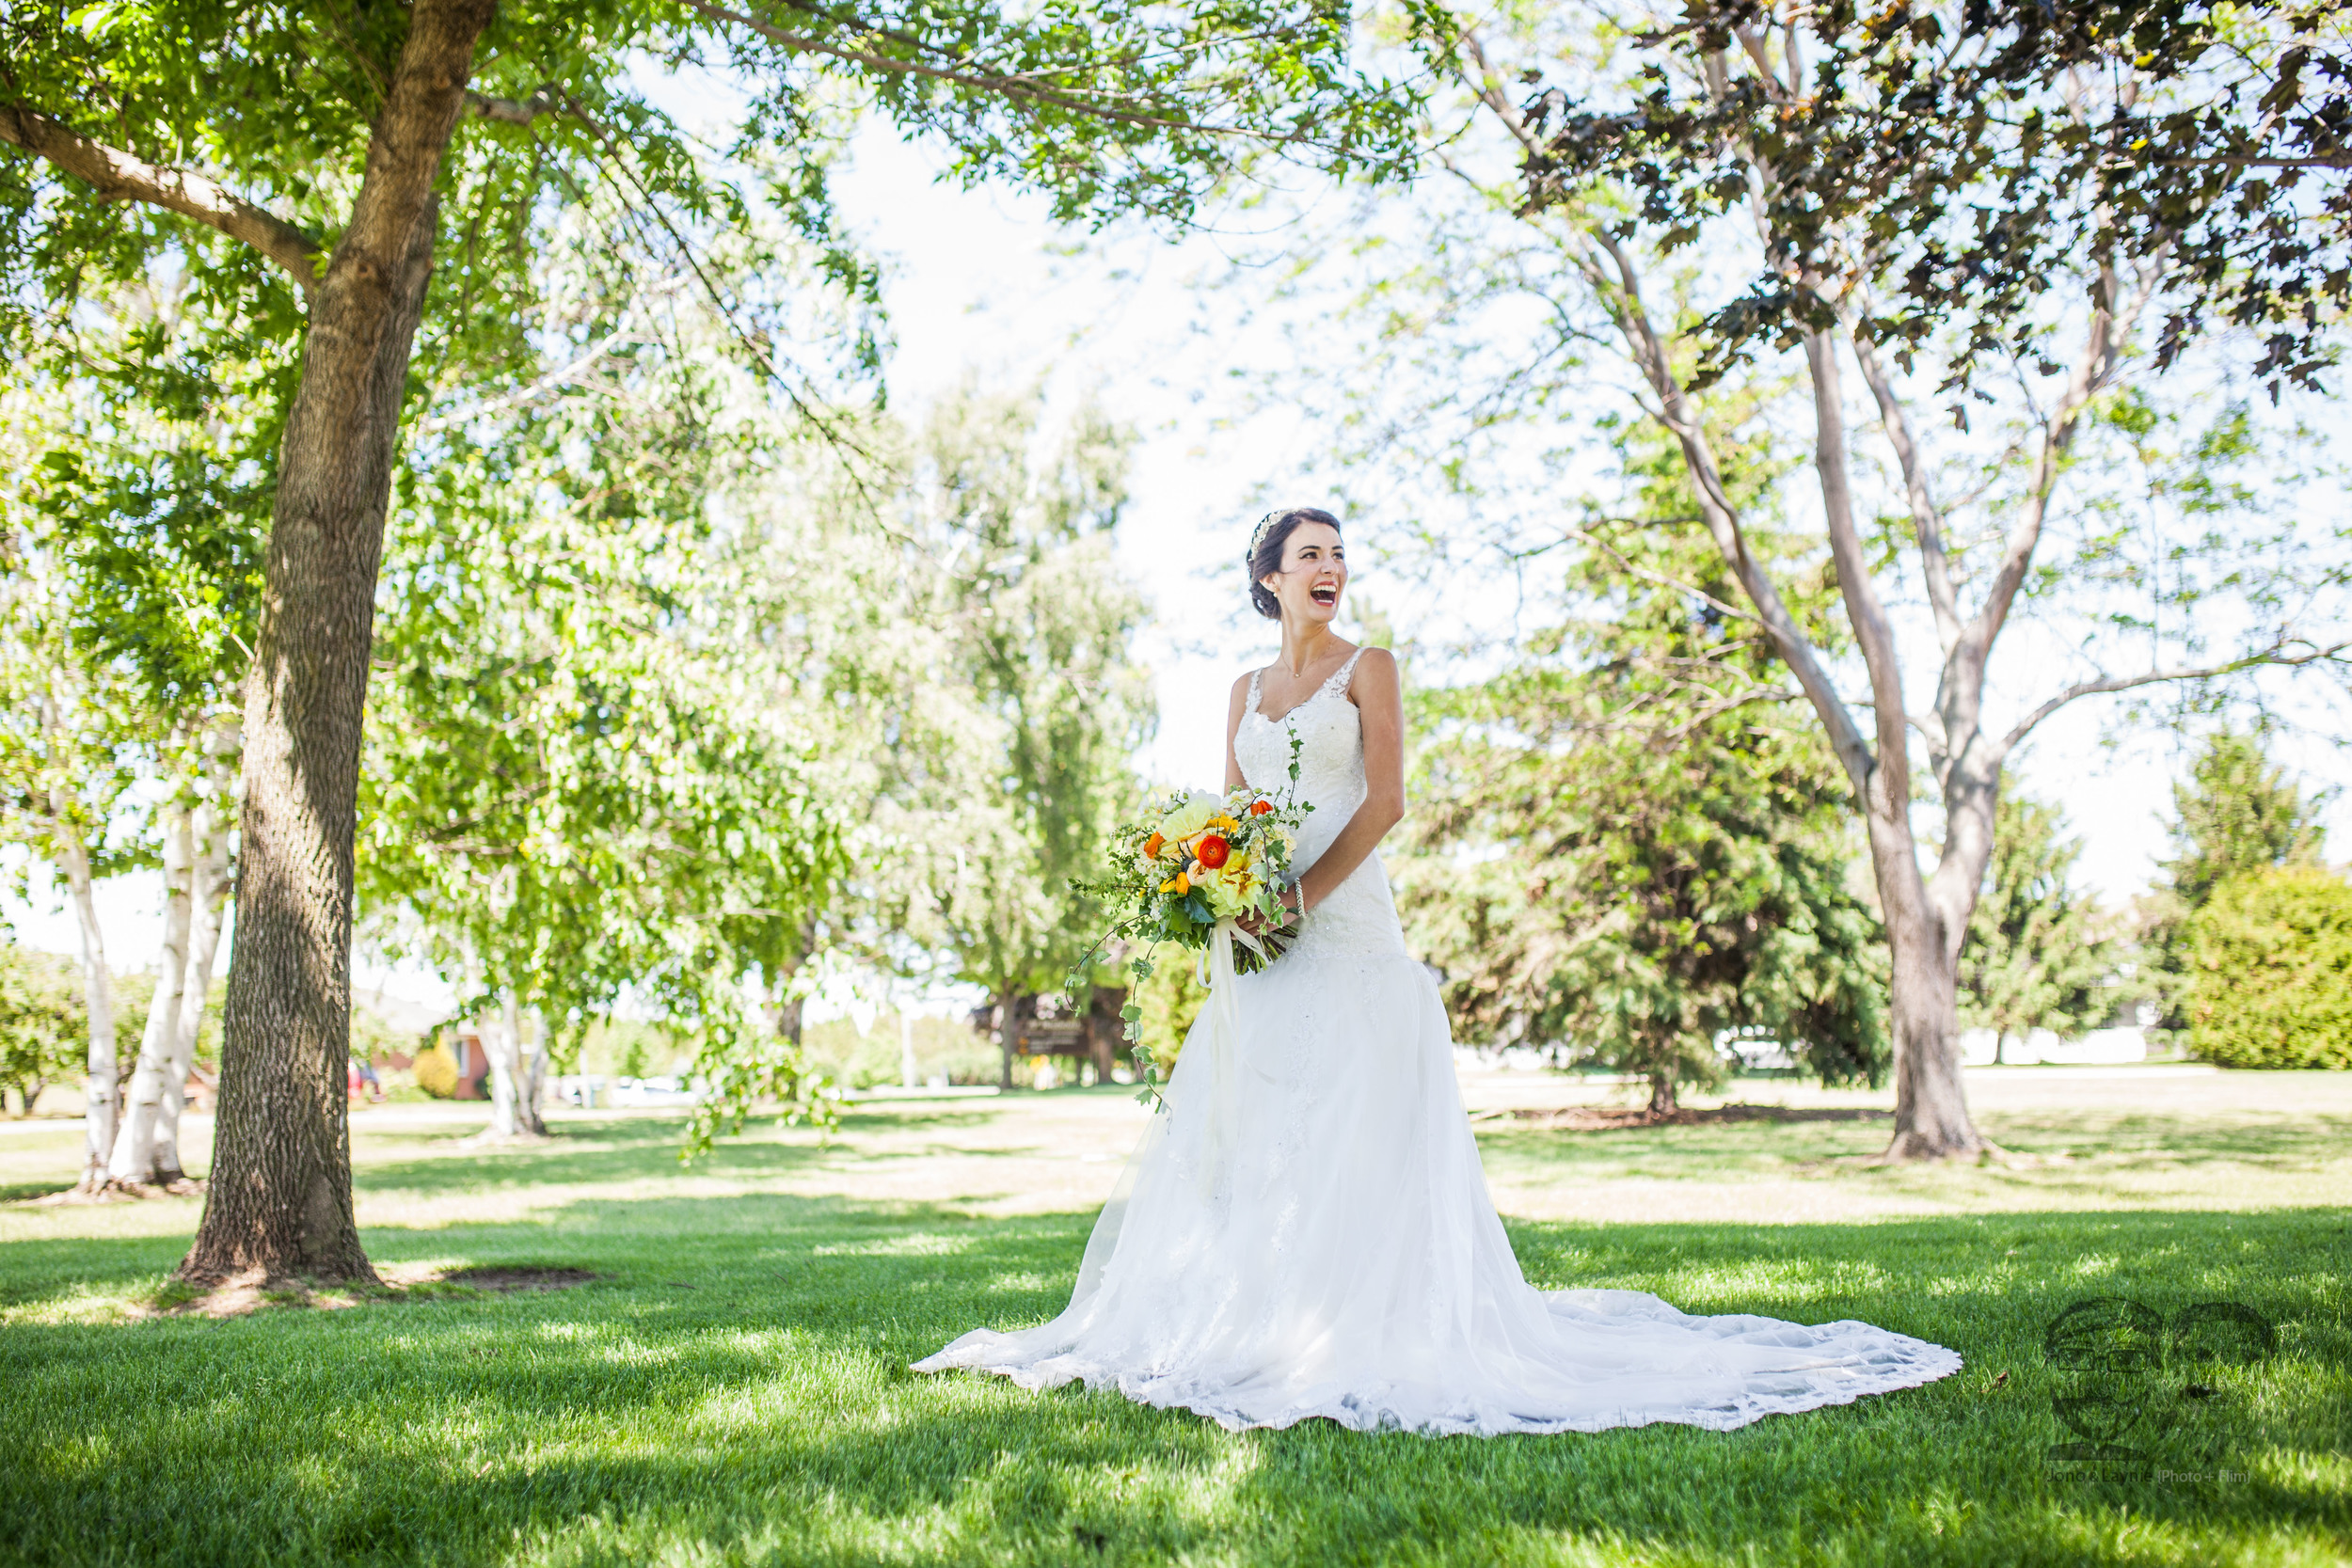 020Toronto Wedding Photographers and Videographers-Jono & Laynie Co.jpg